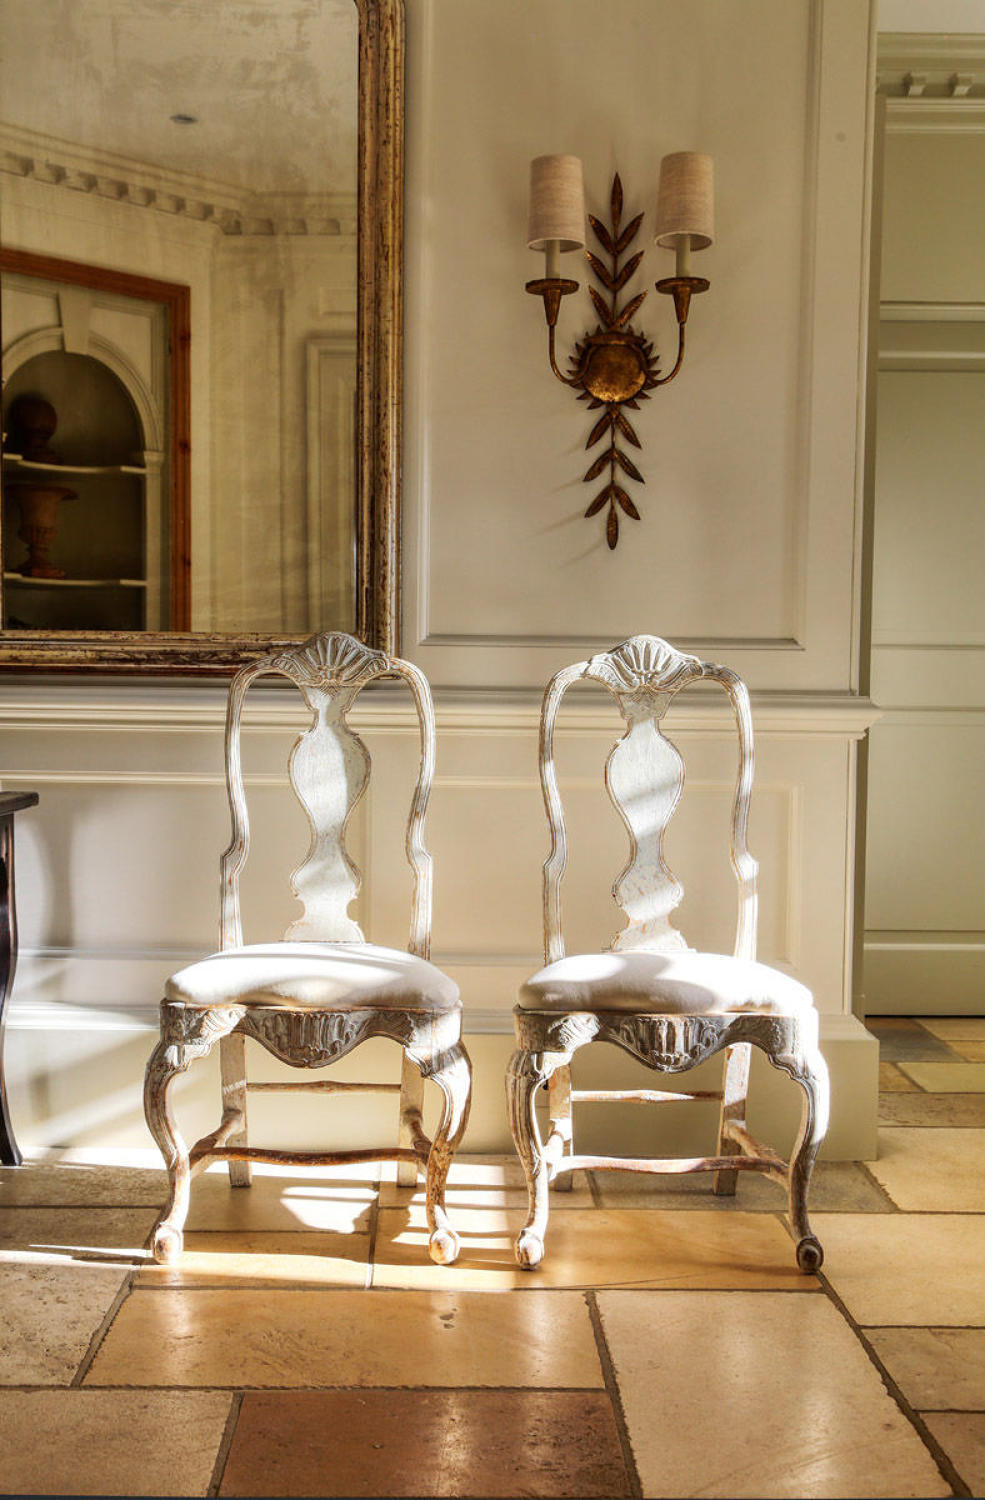 Pair of Rococo chairs